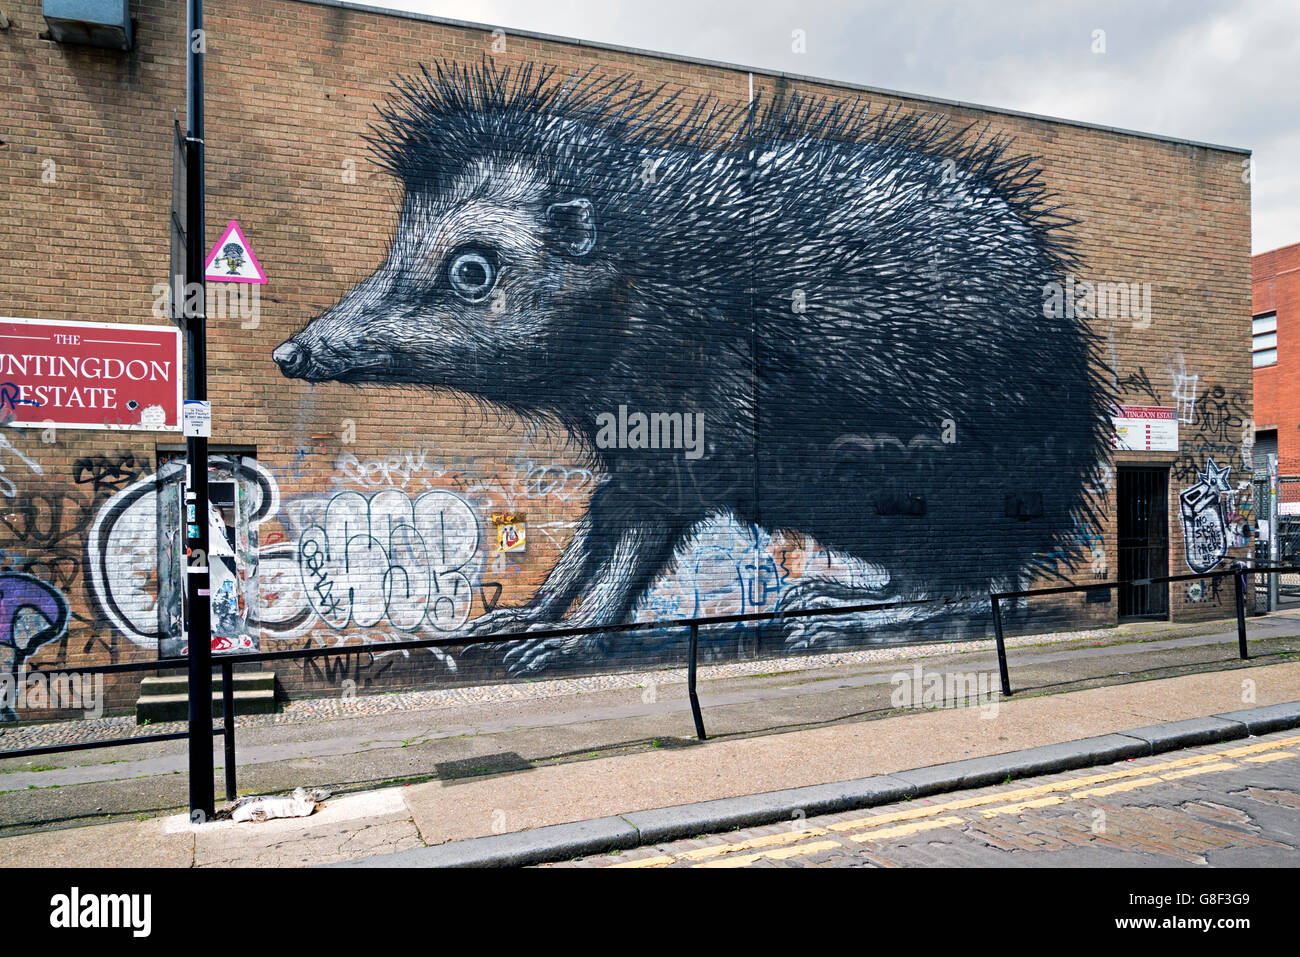 Hedgehog by Belgian street artist Roa in Chance Street, Shoreditch, East London, UK. - Stock Image